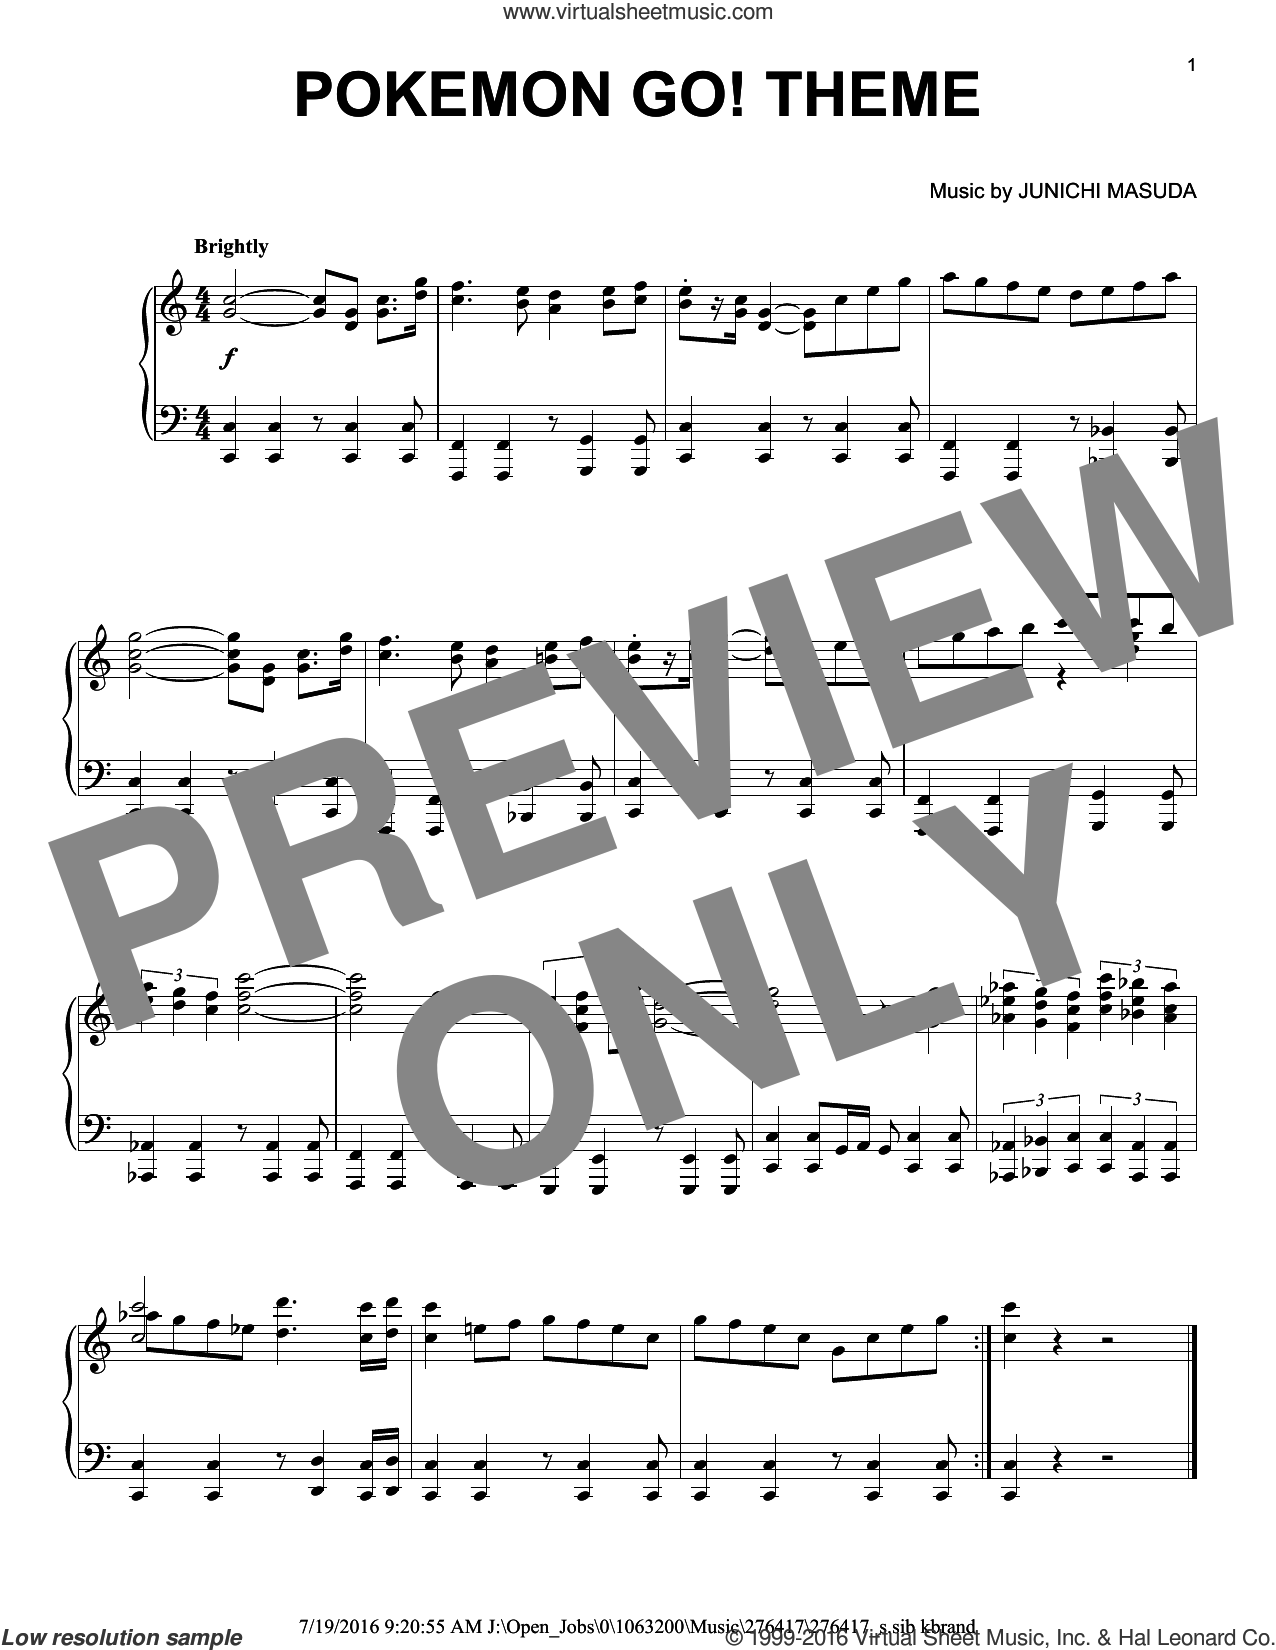 Pokemon Go! Theme sheet music for piano solo by Junichi Masuda, intermediate skill level